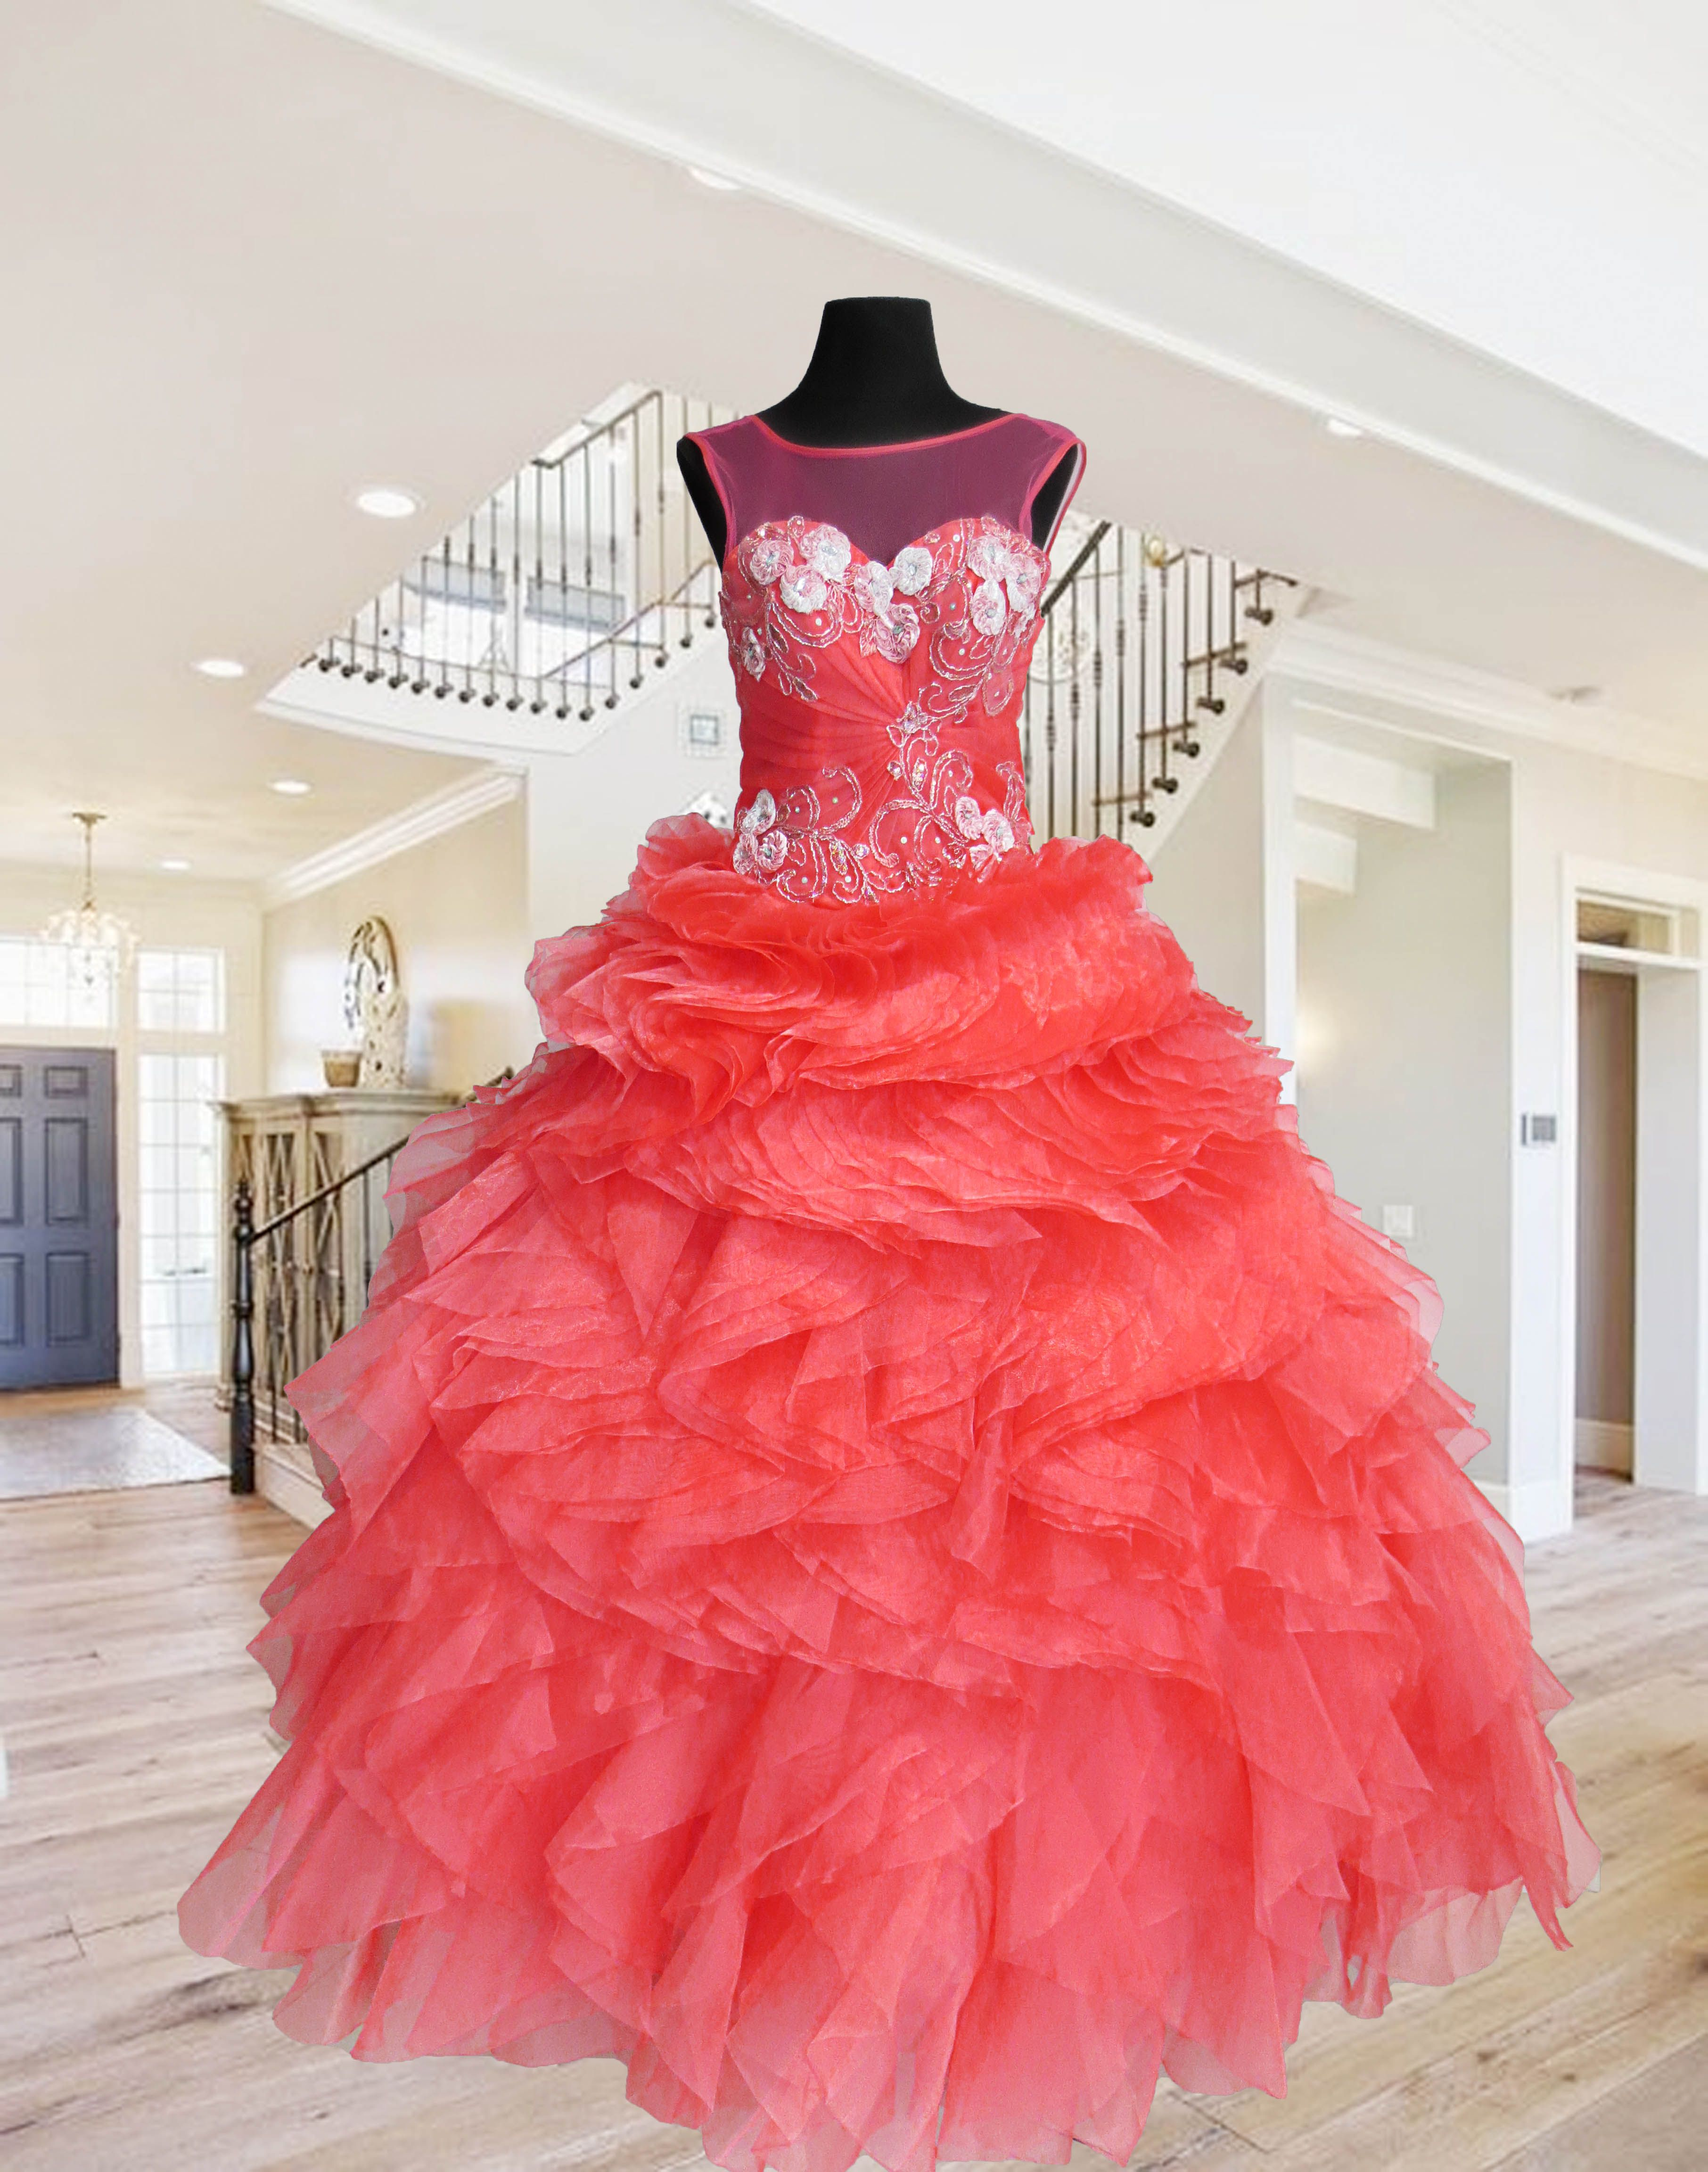 The Daphne Gown is a ball gown for rent Php3,000. www.gownforent.com ...